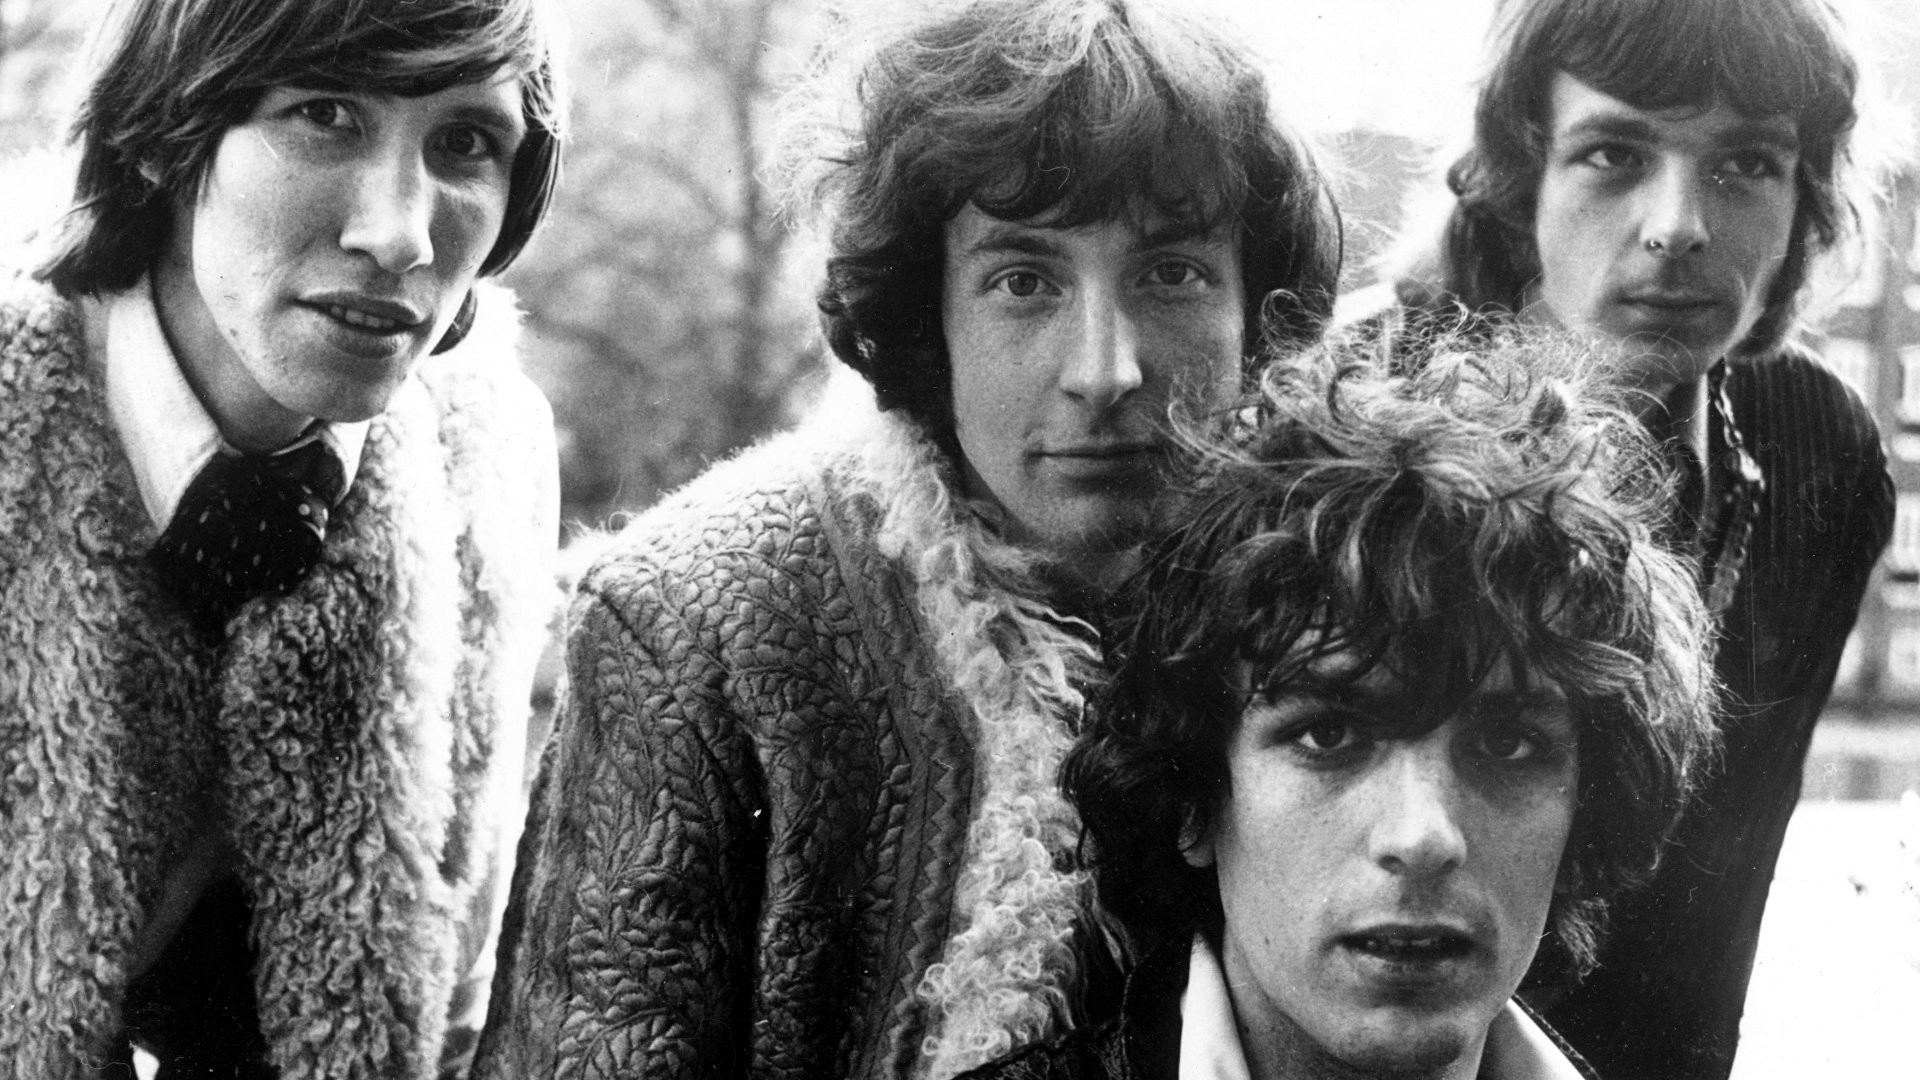 … Pink Floyd In The Sixties With Syd Barret Computer Wallpaper